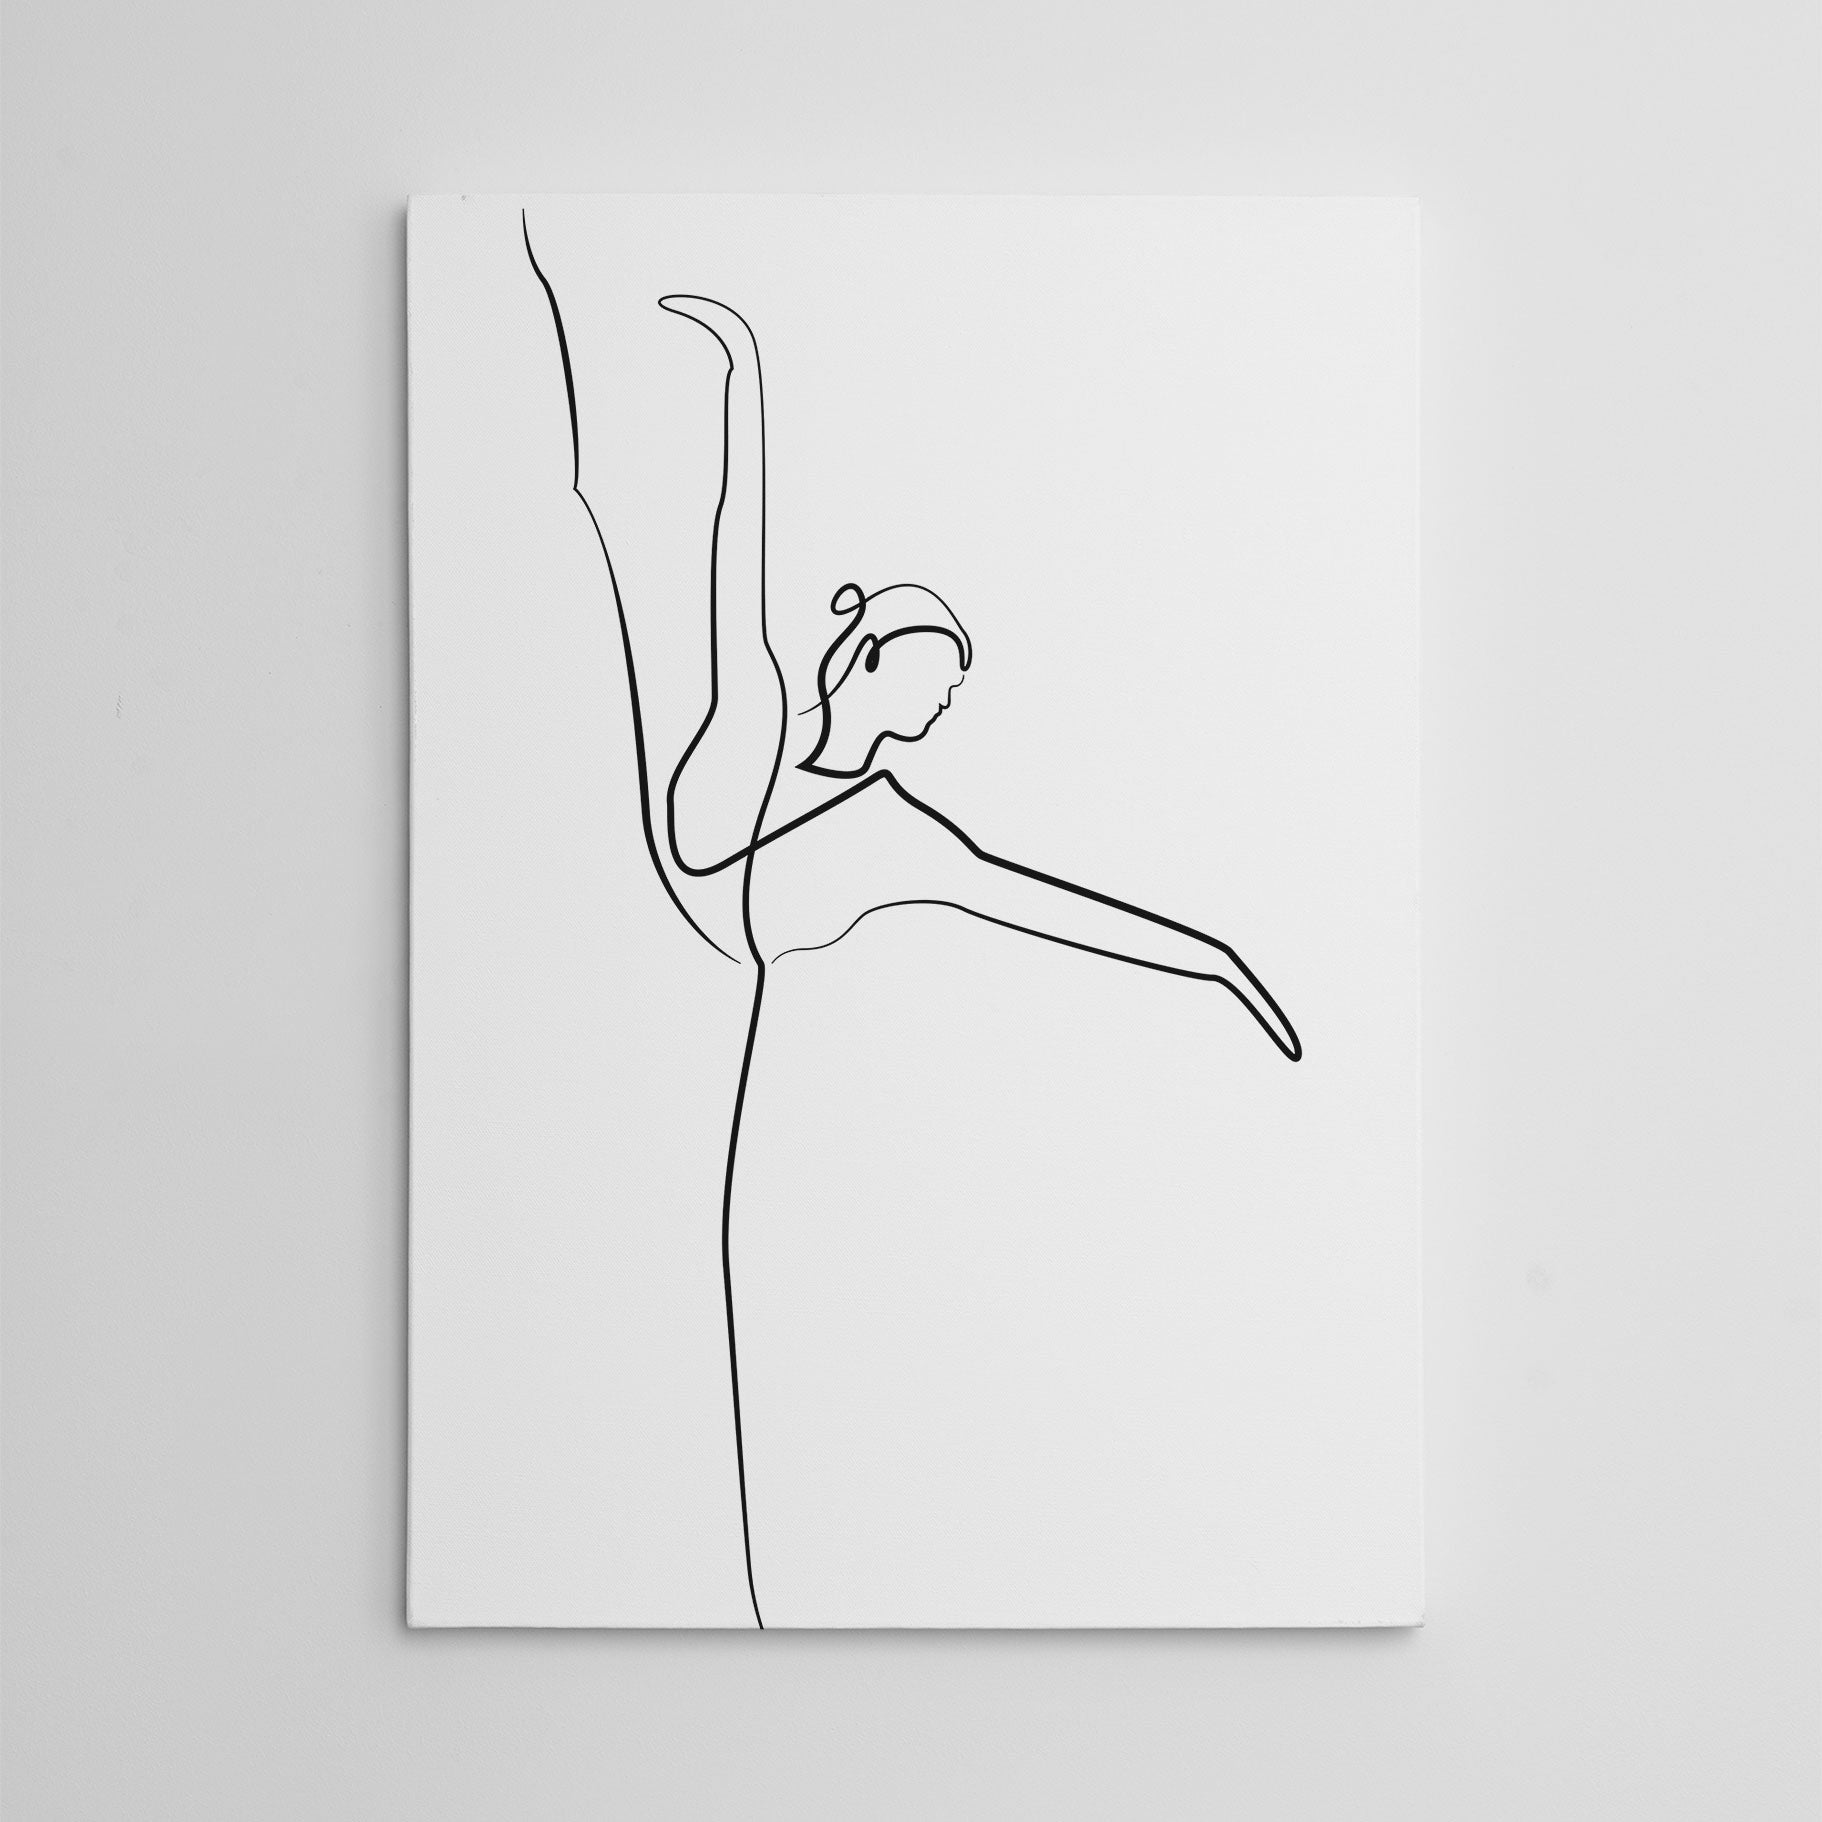 Beautiful line art canvas print with dancing ballerina.